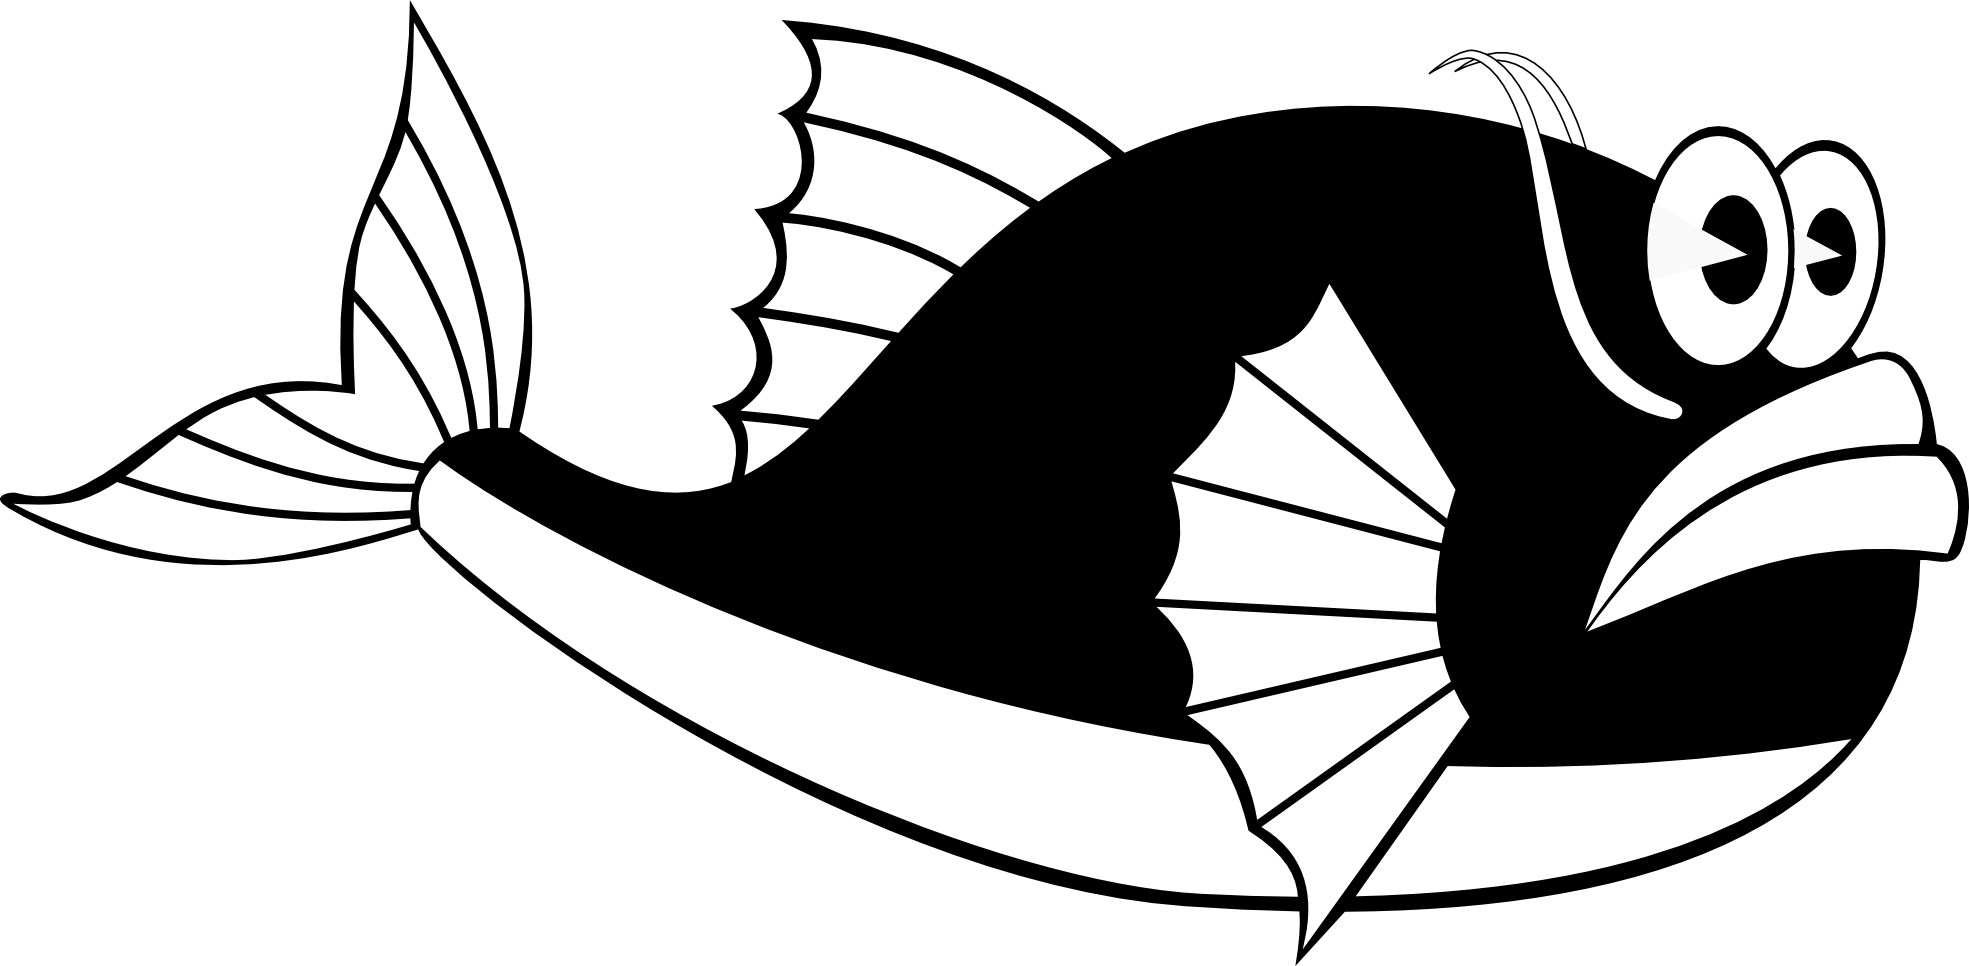 Whale Fish Black White Line Art Scalable Vector Graphics SVG.